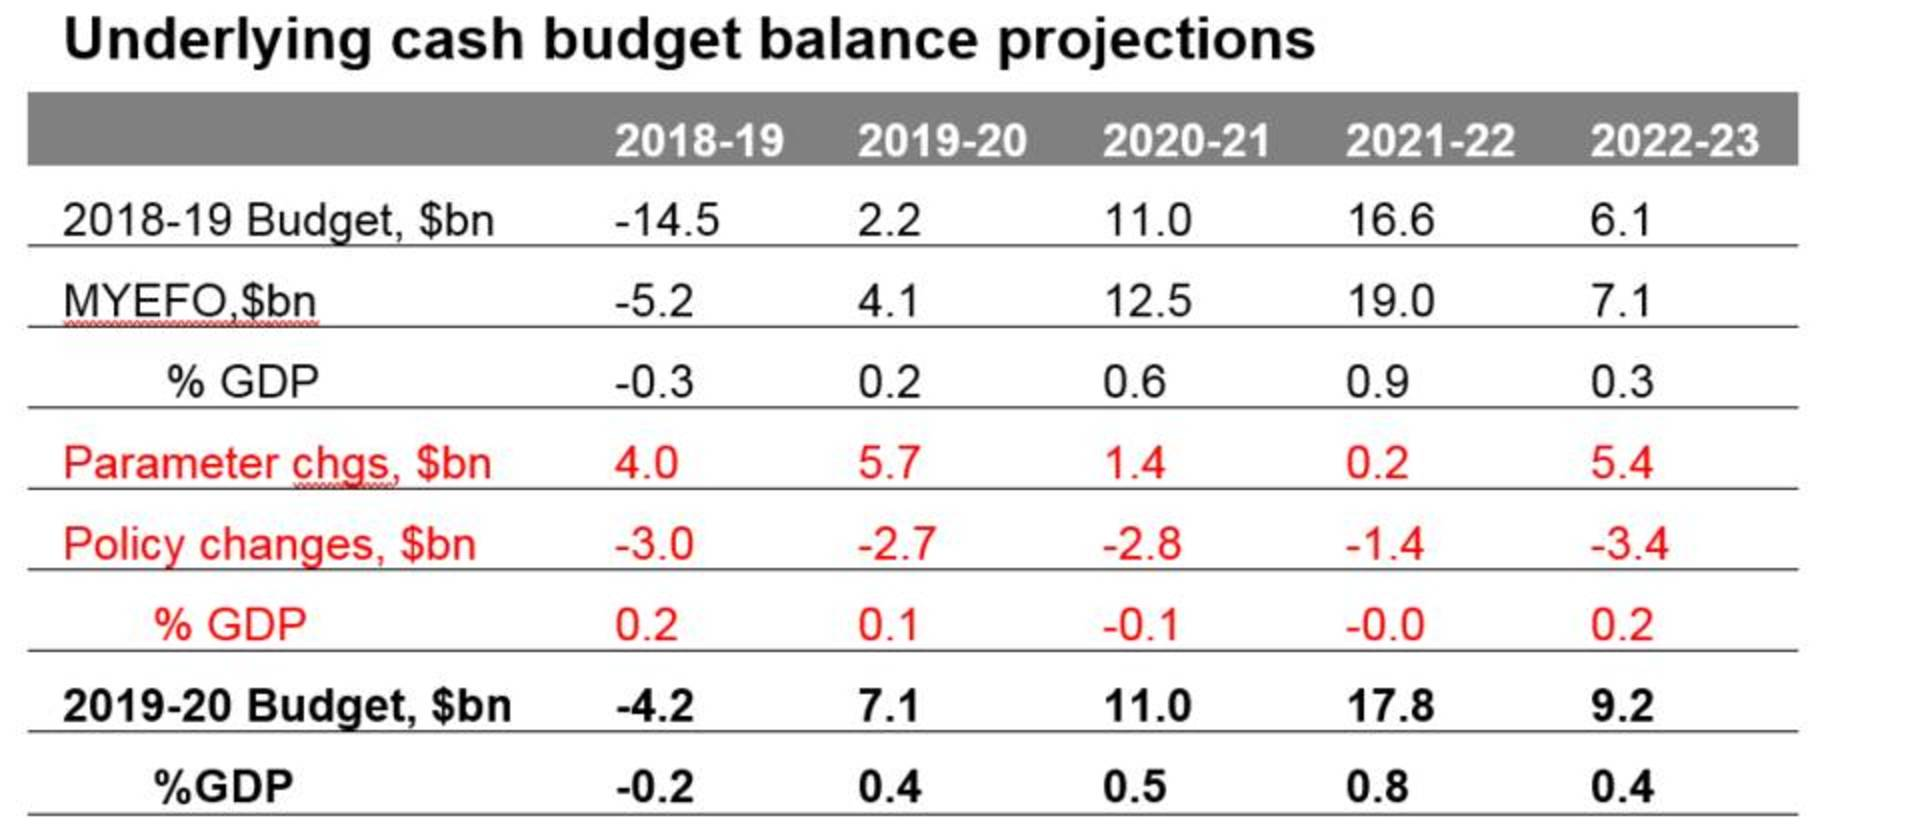 Underlying cash budget balance projections